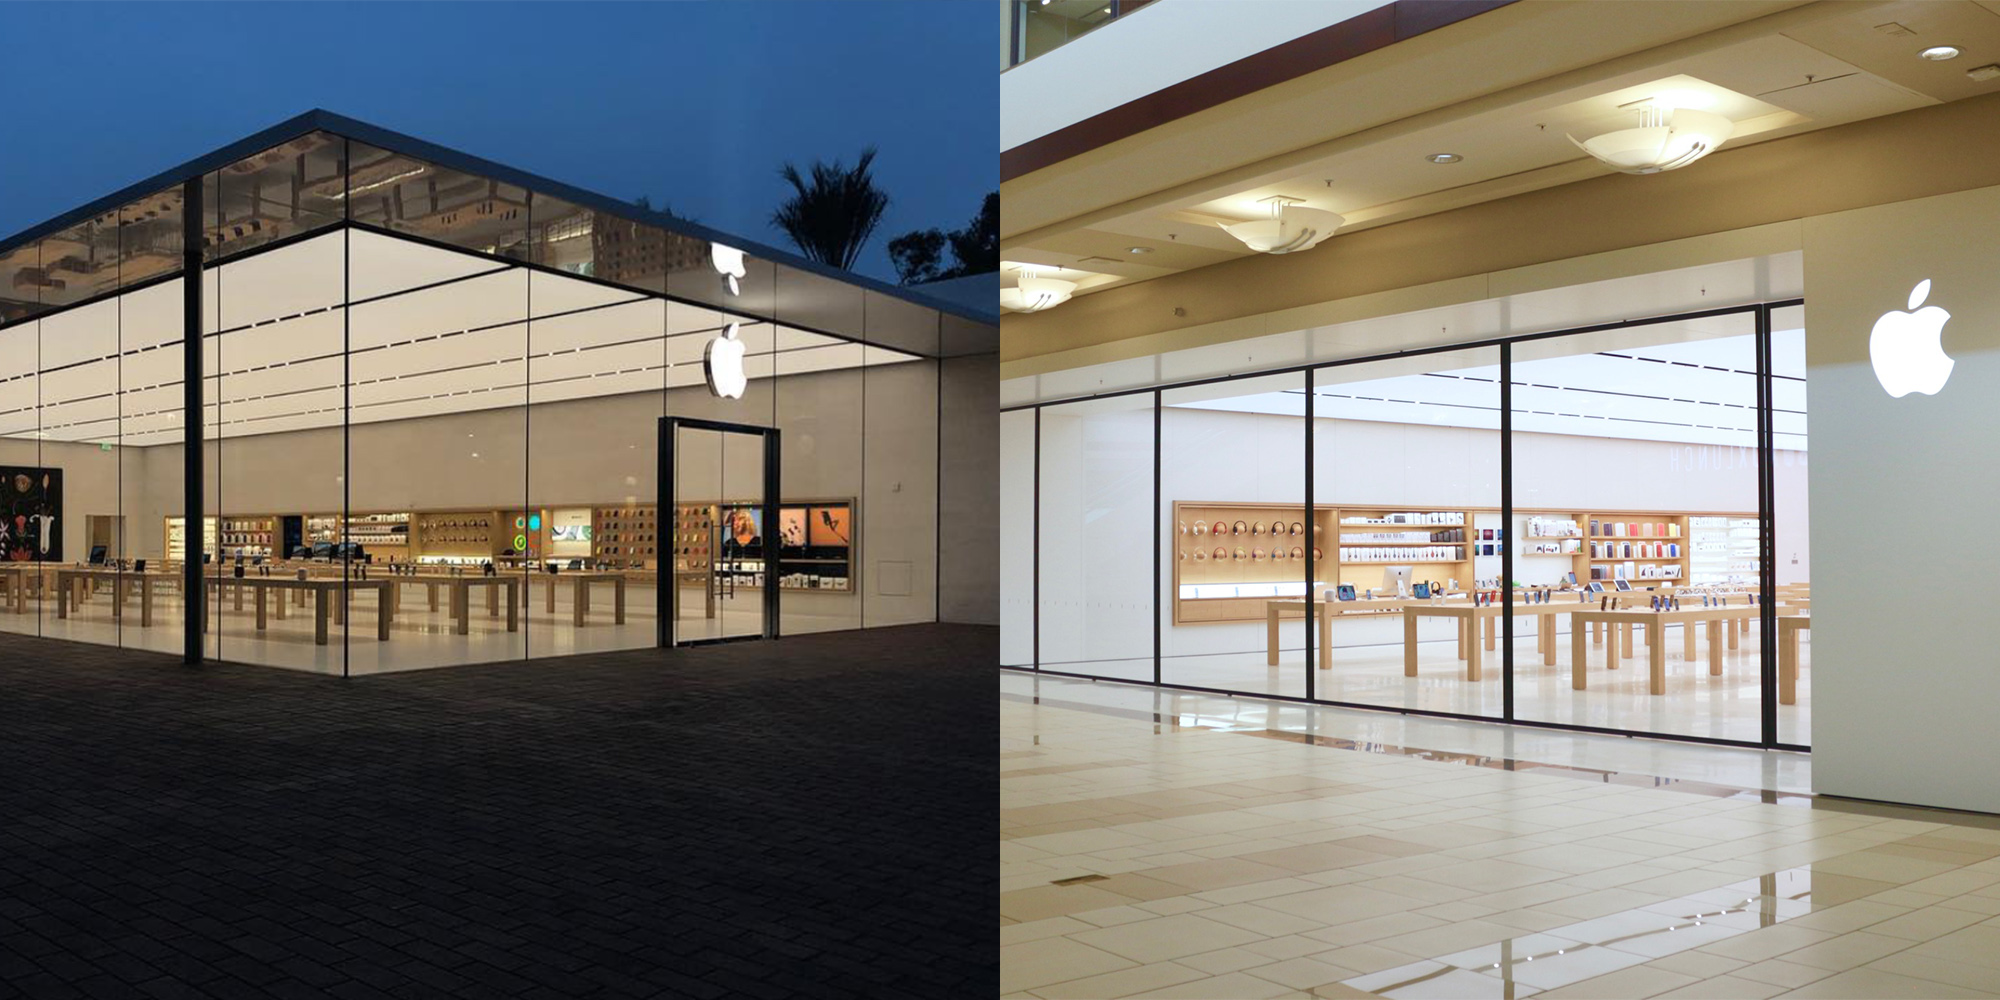 P Os Apple Welcomes Customers To New Stores At Orland Square Mall Irvine Spectrum Center